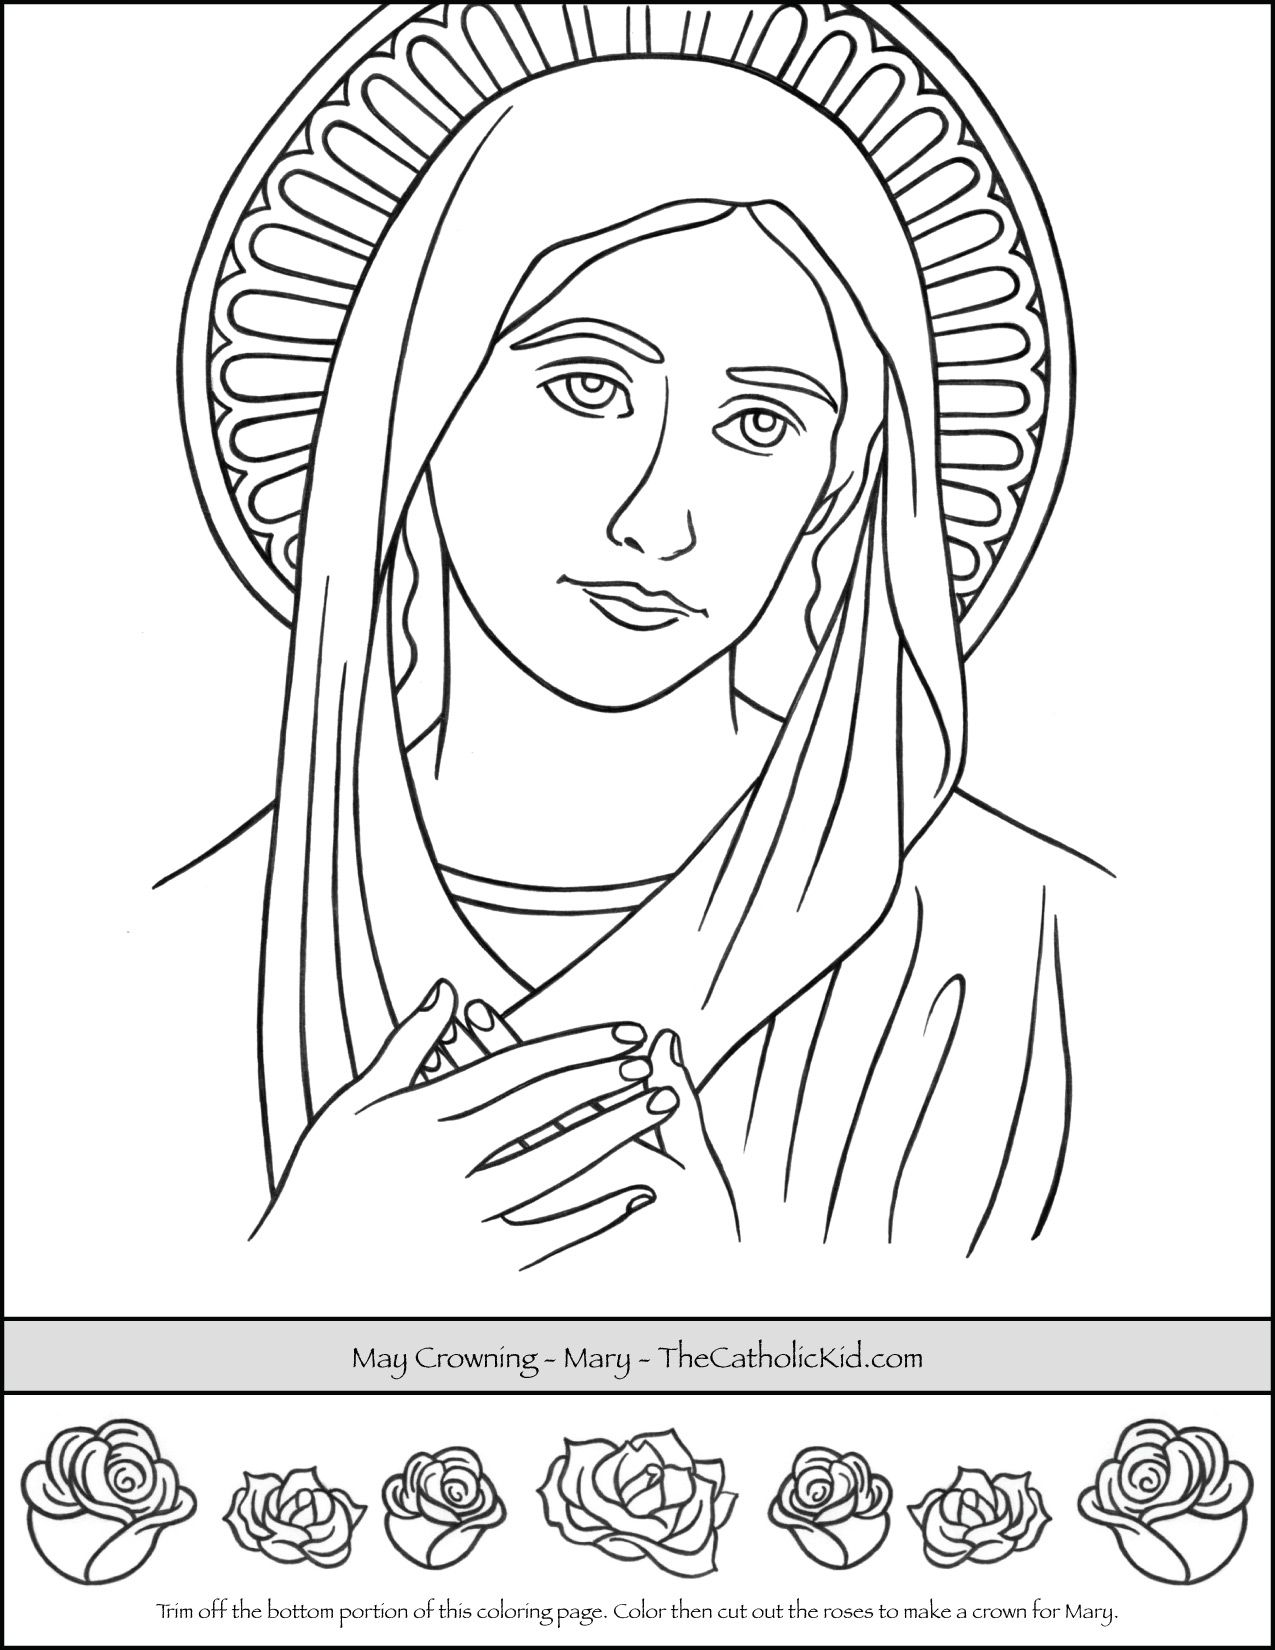 May Crowning Coloring Page Bible coloring pages